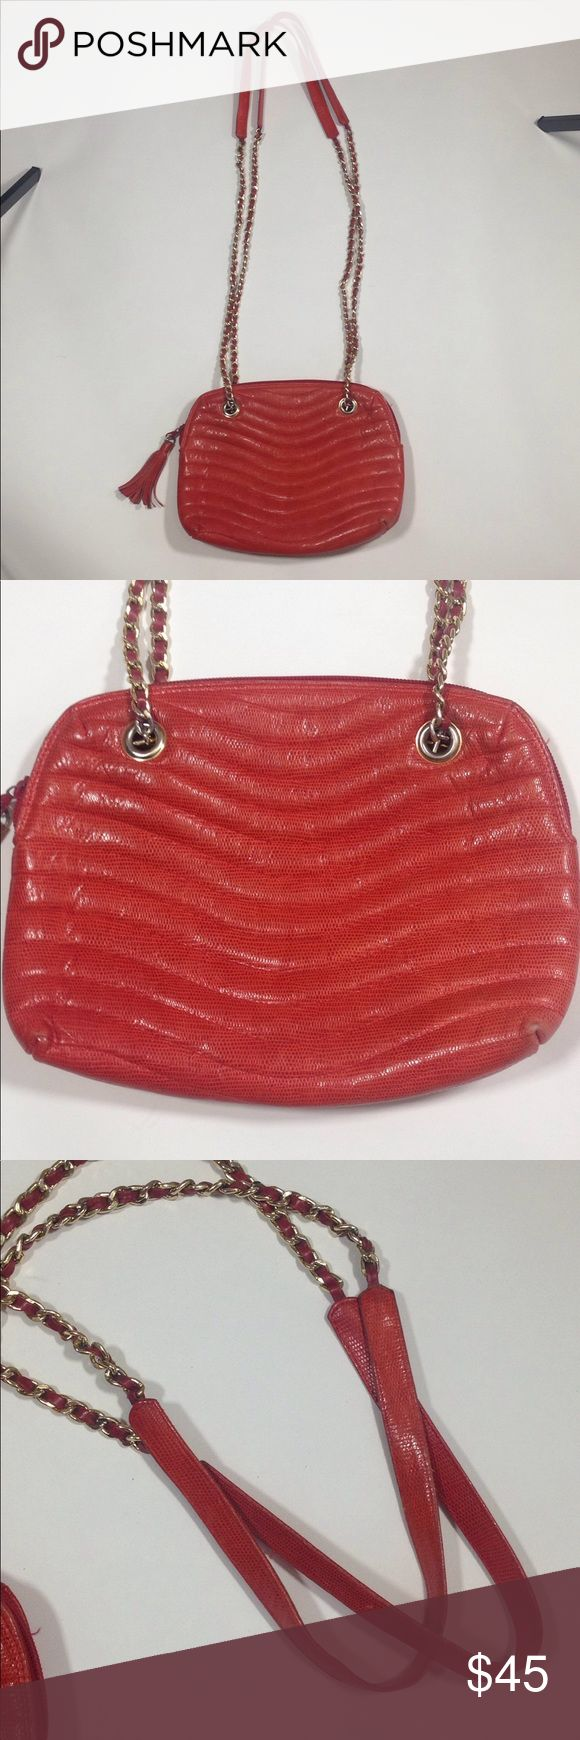 Pierre Lambert made in Italy vintage bag Beautiful trendy shoulder bag. Made in Italy 100% leather. Gold hardware. 11 inches wide. 8 1/2 inches tall. 2 inches deep. Chain is long enough to also use as cross body. Good condition red color.  Some wear shown on corners pierre lambert Bags Shoulder Bags